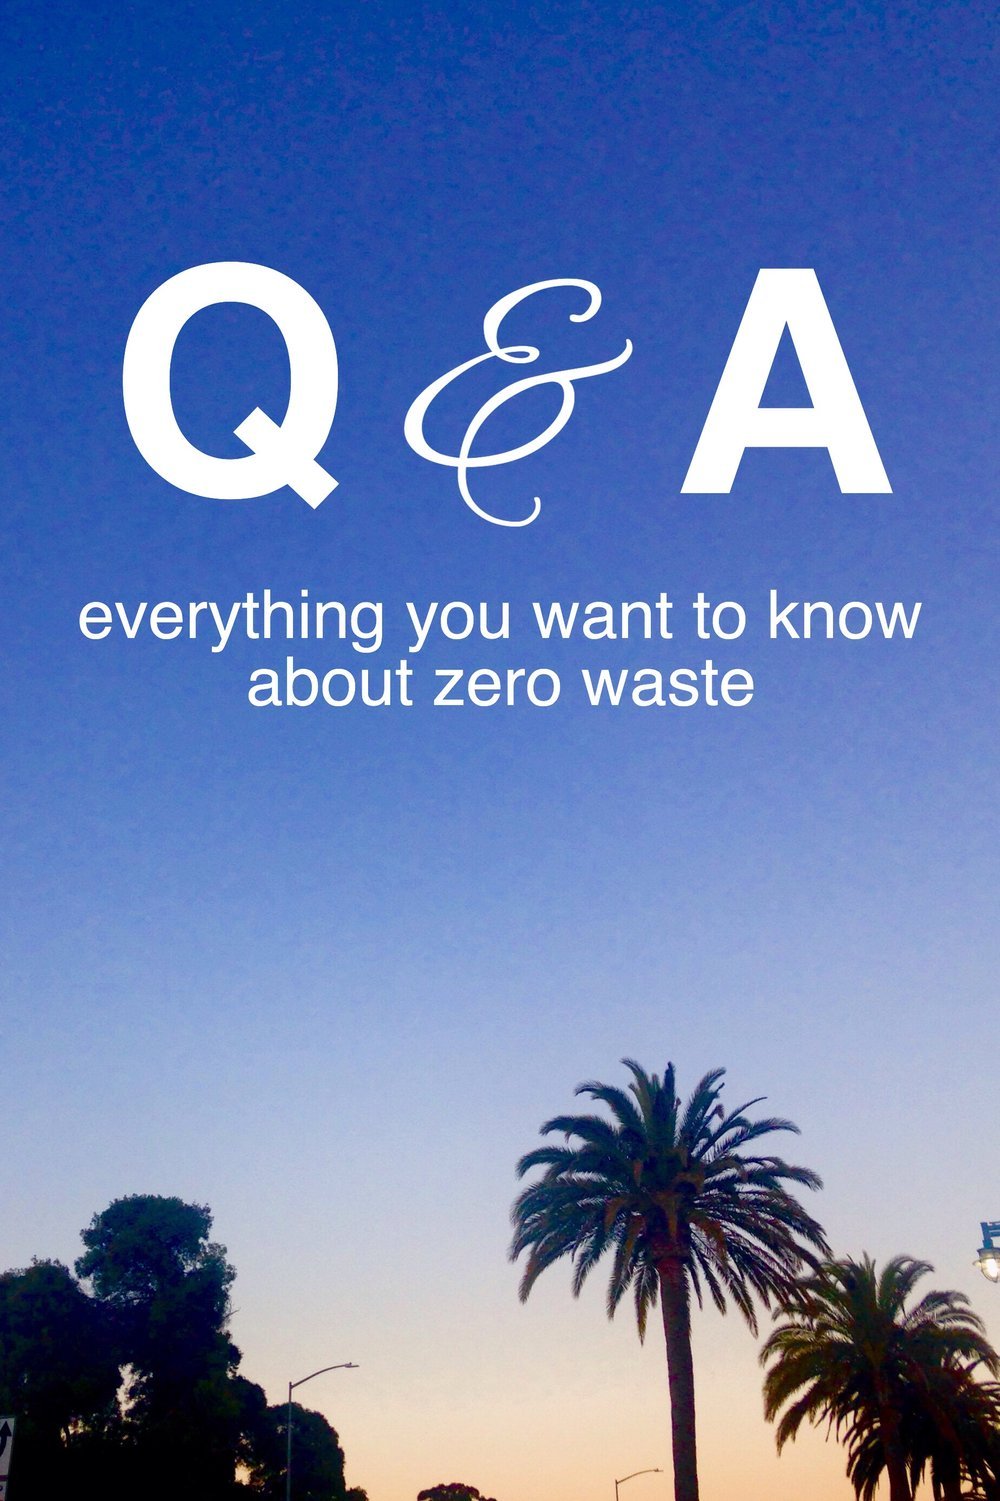 Everything you want to know about zero waste! I took all of your questions and compiled a video. Let me know if there's anything else you want to know about minimalism, natural living, and sustainability.